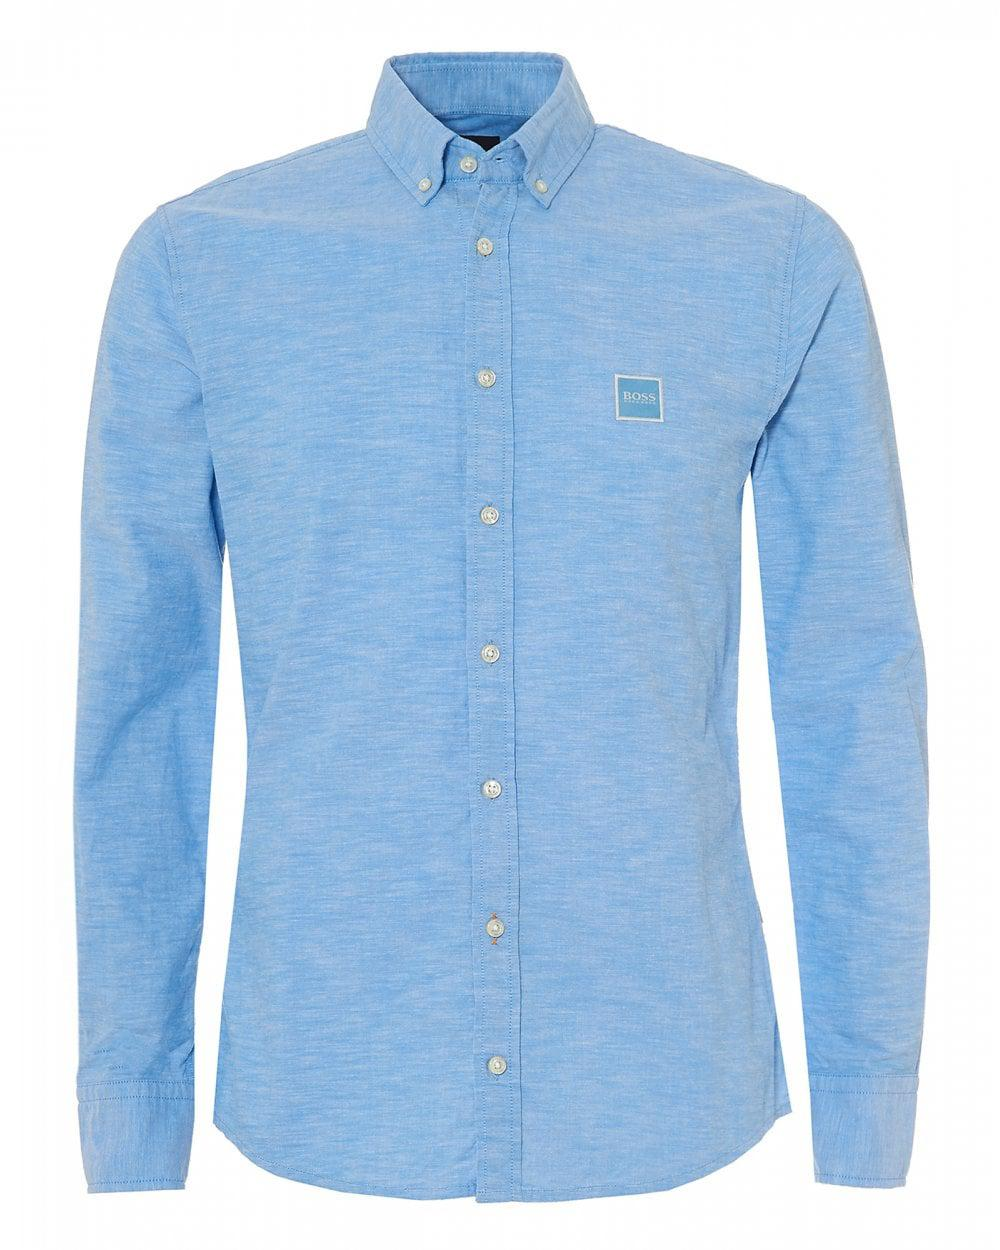 4122402f BOSS - Mabsoot Slim Fit Sky Blue Oxford Shirt for Men - Lyst. View  fullscreen